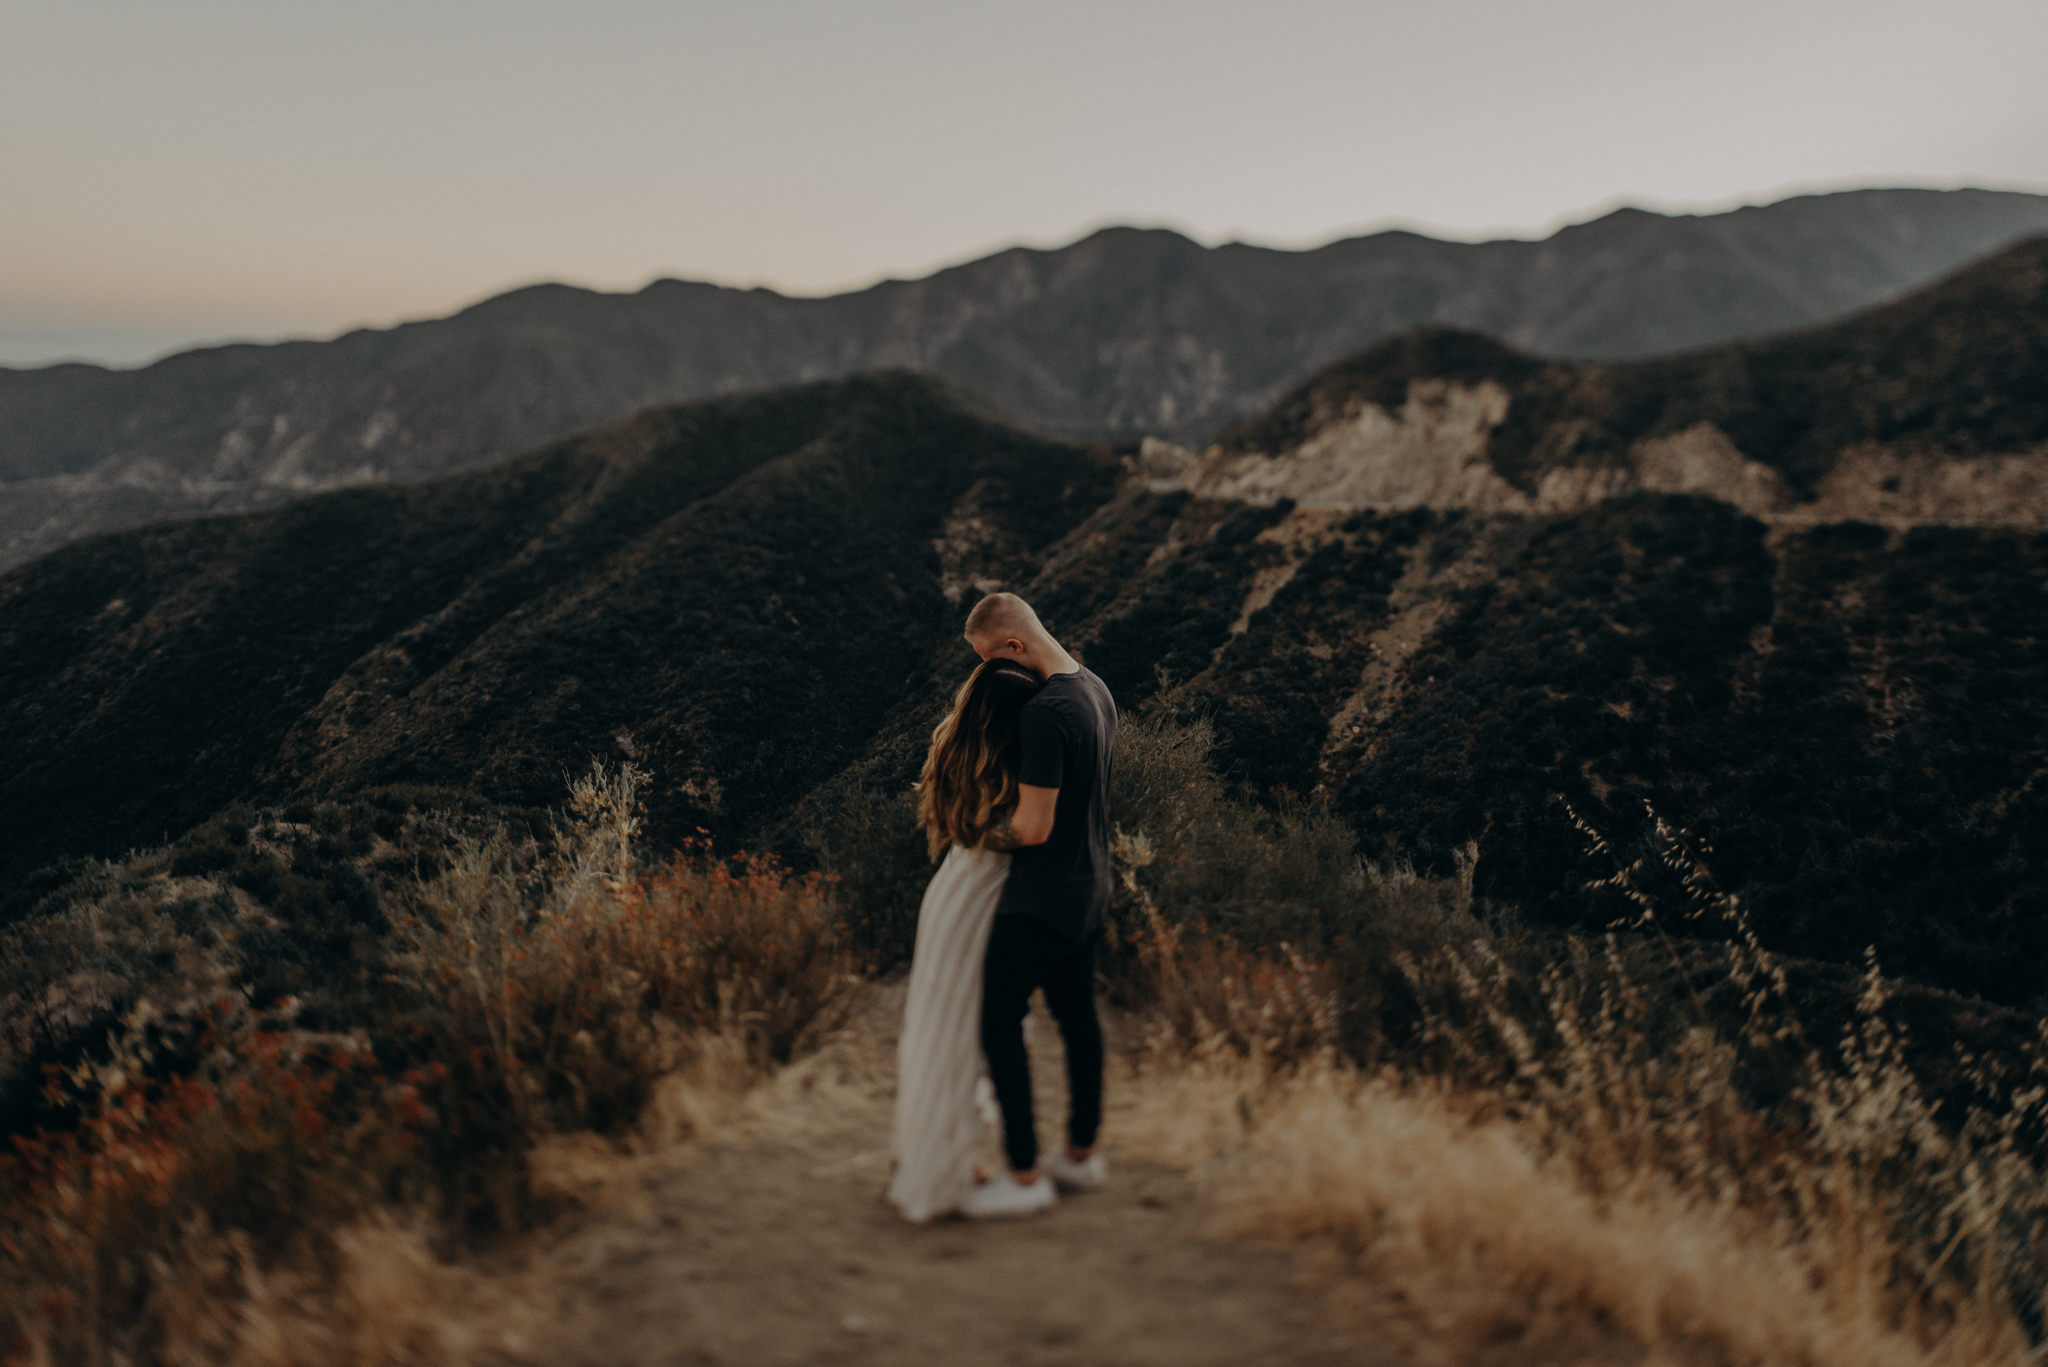 Isaiah + Taylor Photography - Los Angeles Forest Engagement Session - Laid back wedding photographer-035.jpg